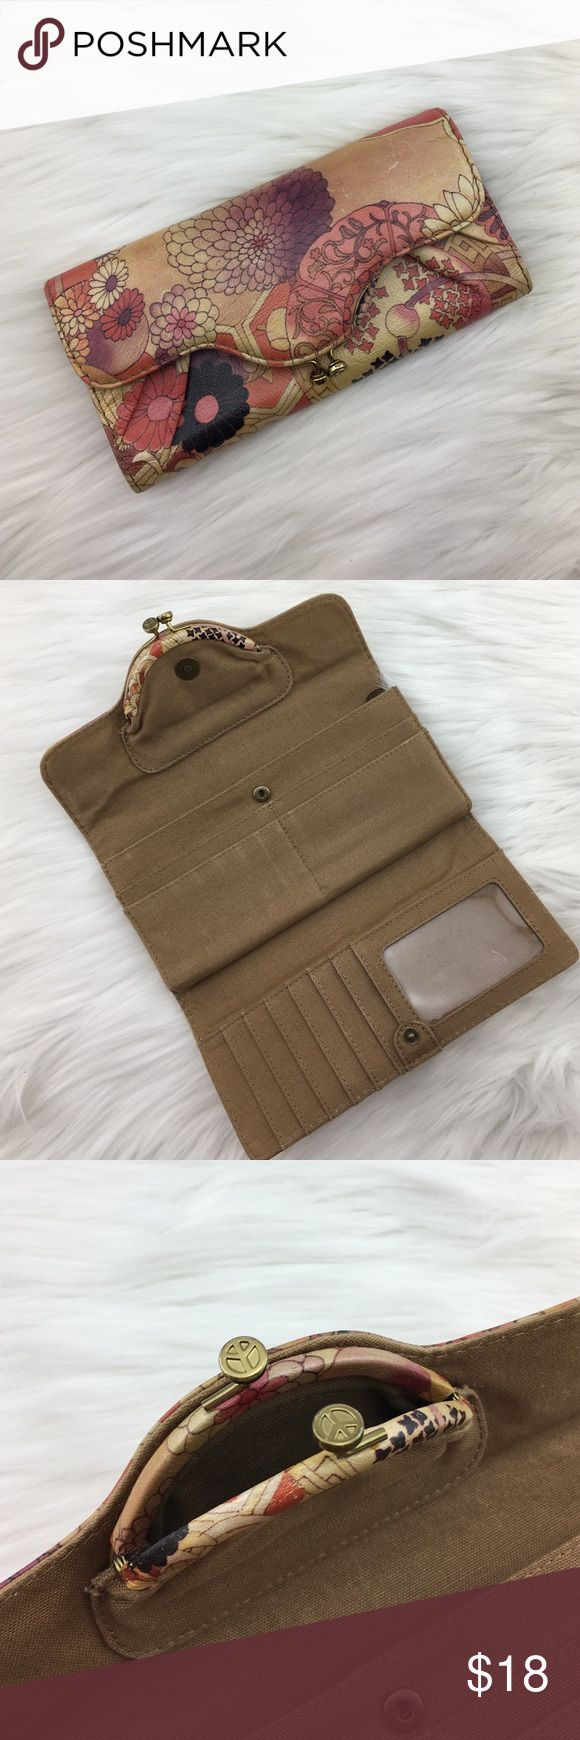 Lucky Brand Wallet Like new! Cute bohemian Wallet with coin purse attached. Lucky Brand Bags Wallets